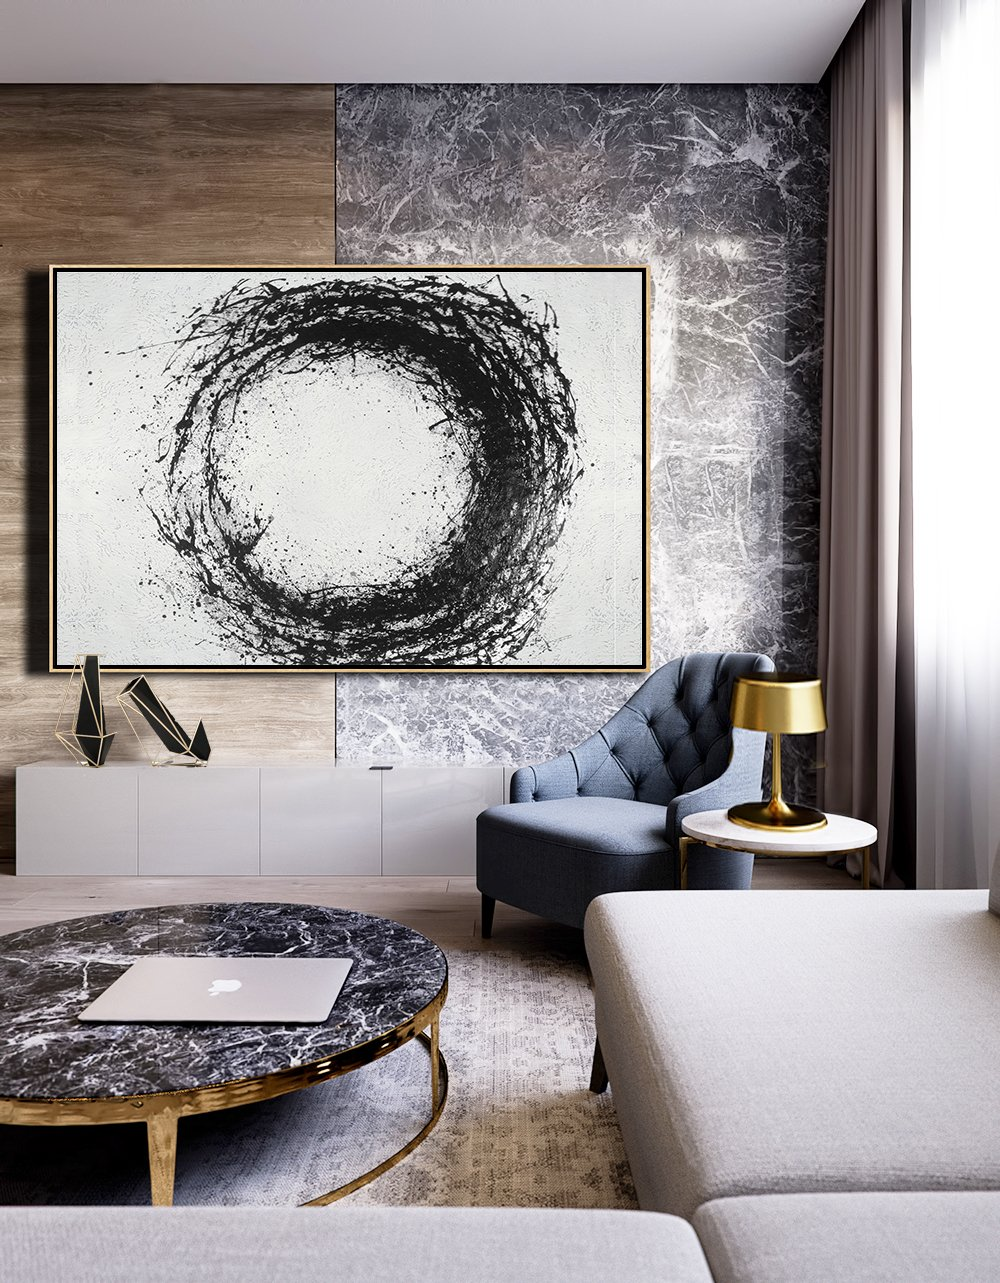 Wall Art Ideas For Living Room,Oversized Horizontal Minimalist Drip Painting On Canvas, Black And White - Extra Large Canvas Painting